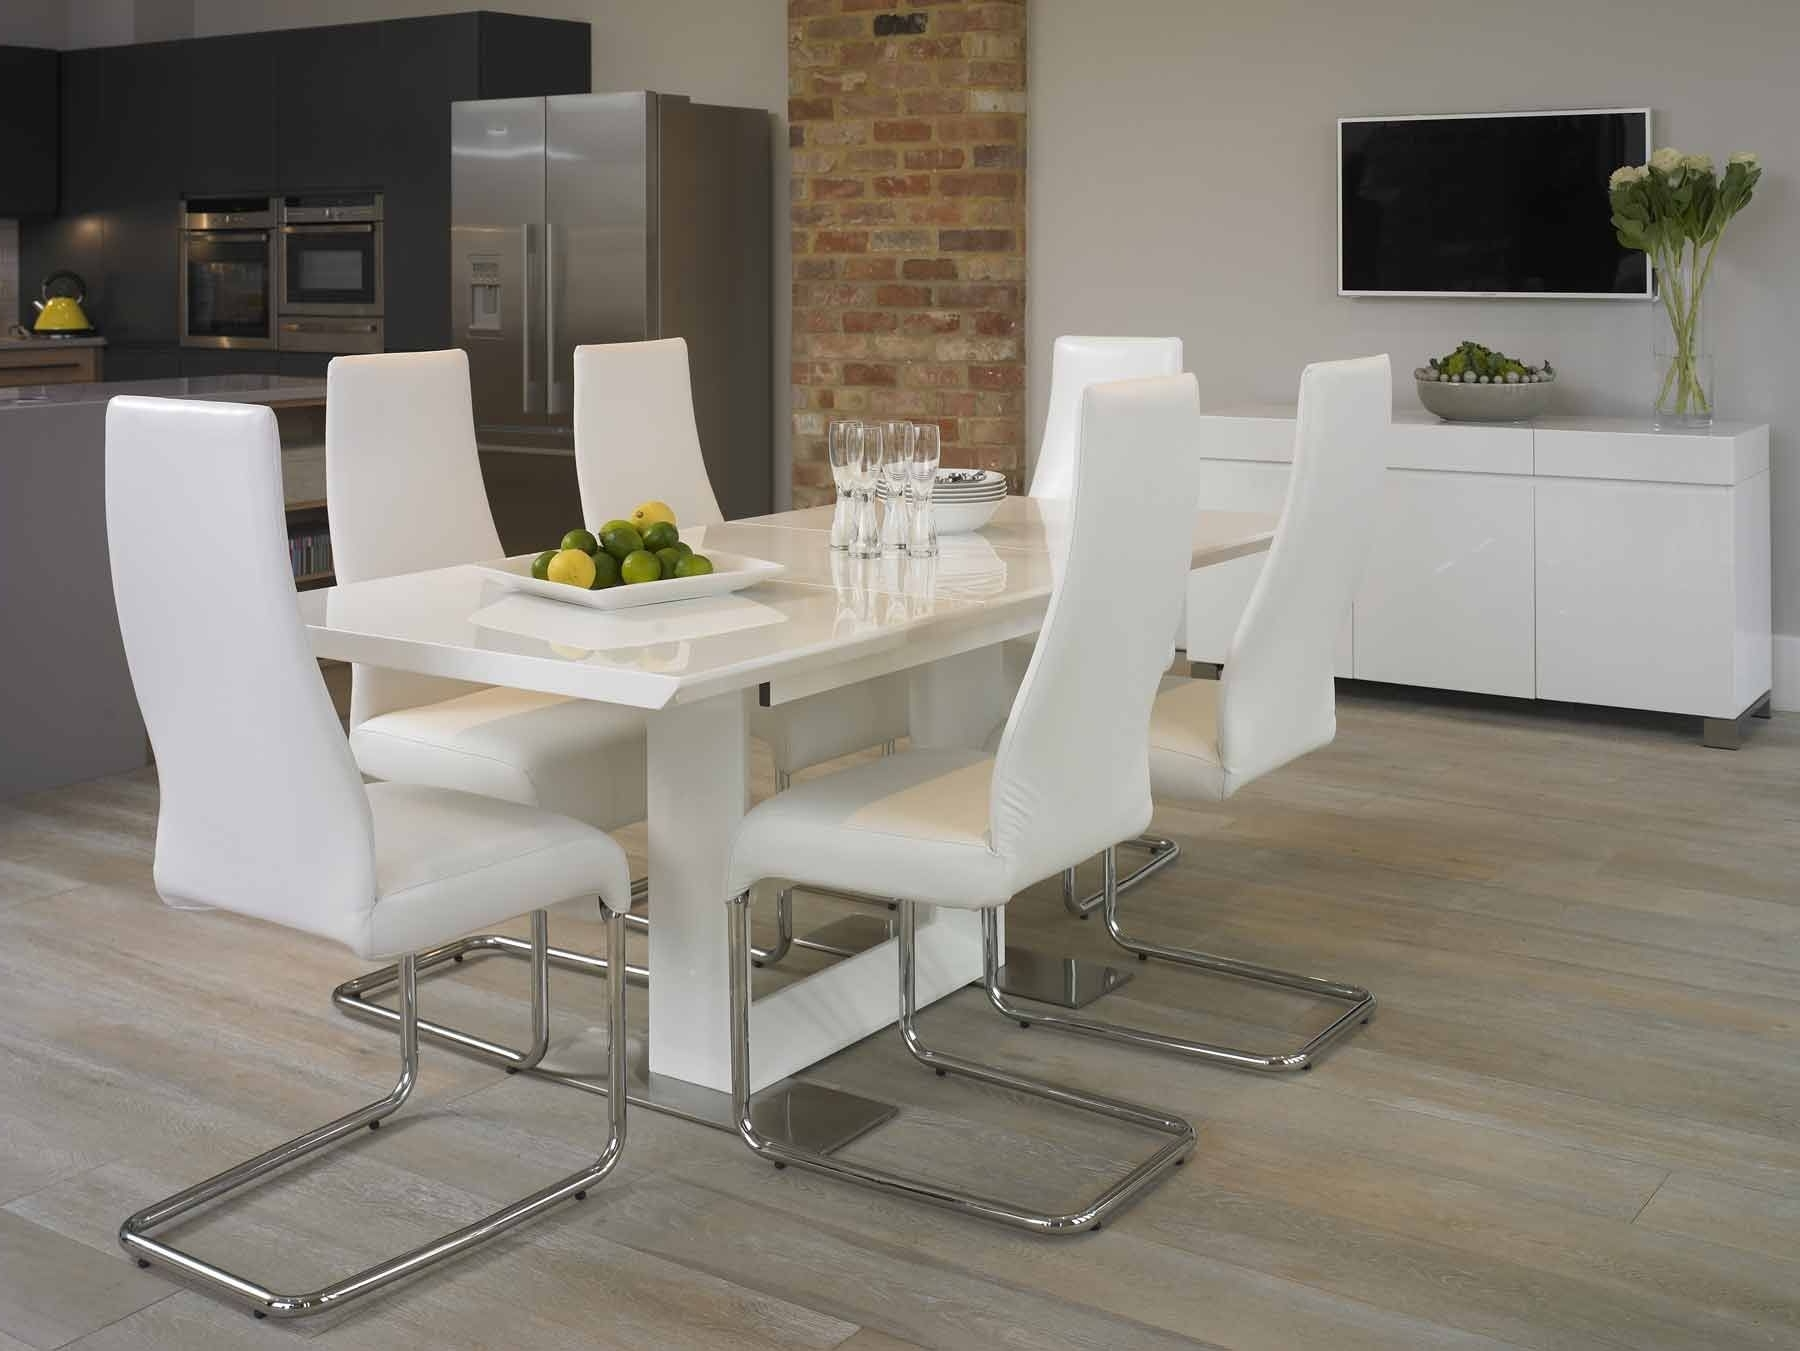 Ideas Intended For Oval White High Gloss Dining Tables (View 22 of 25)